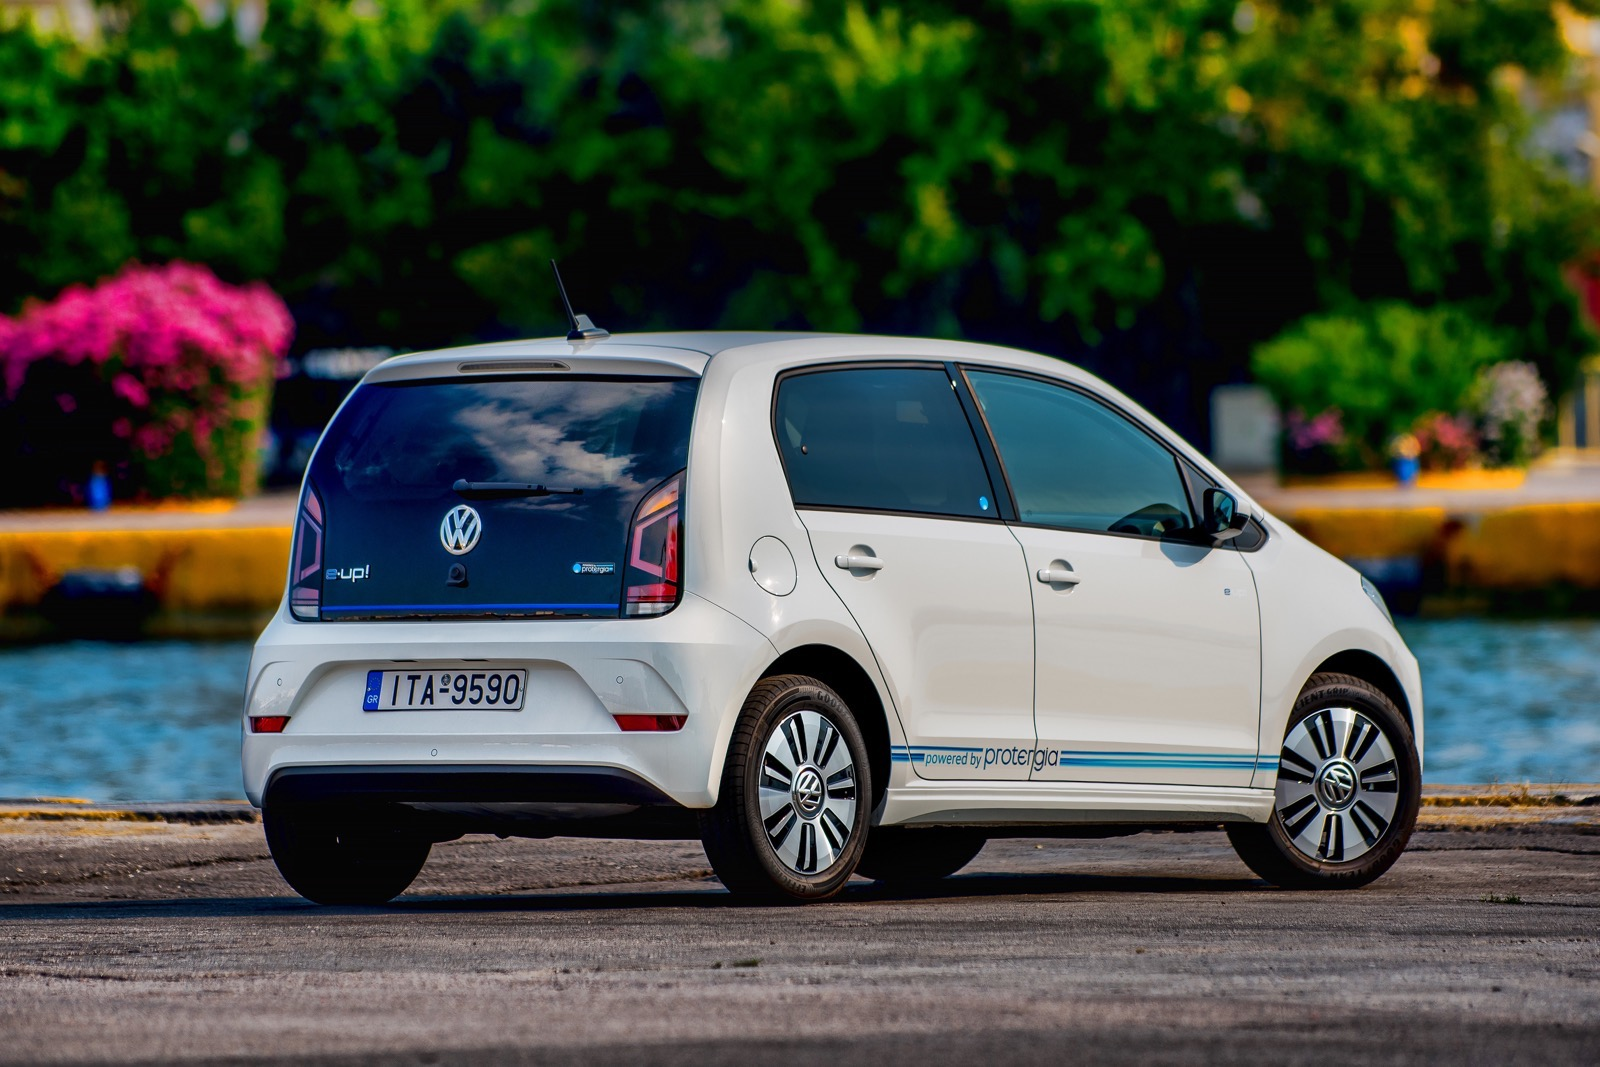 VW_e-up_by_Protergia_01